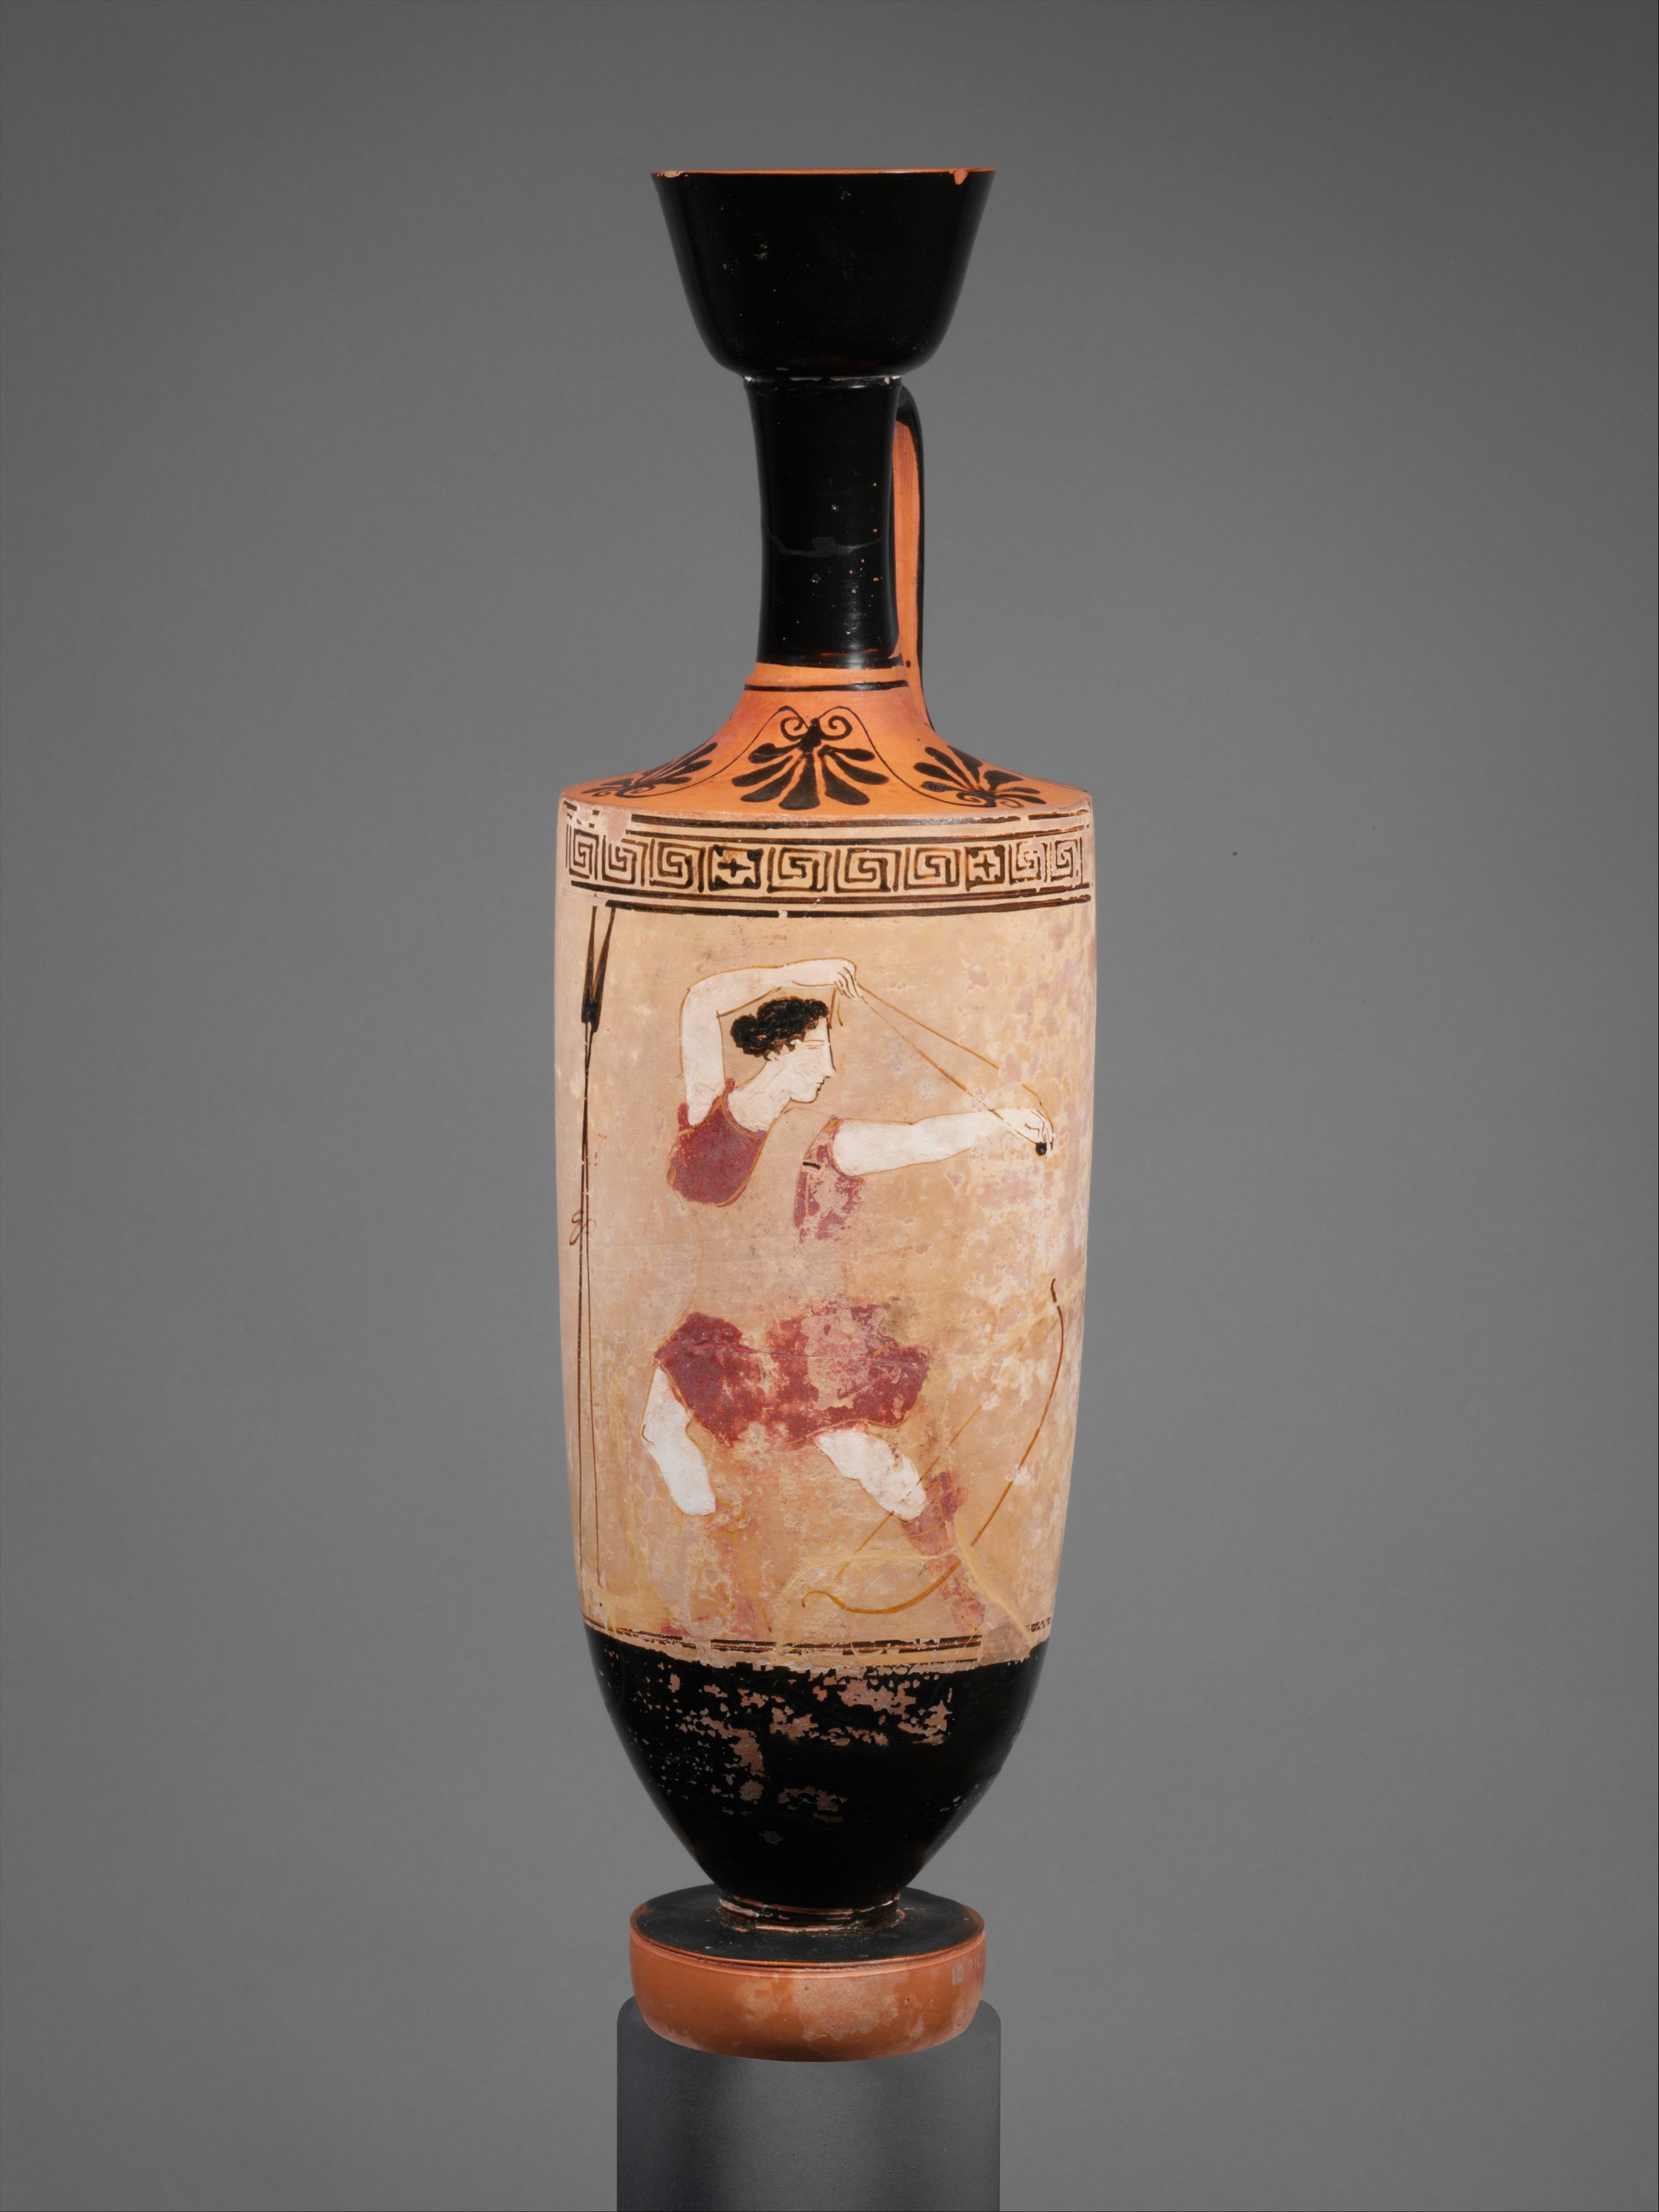 A terracotta lekythos (oil flask), ca. 440 BCE, showing an Amazon using a slingshot. Seriously: this is not a toy, okay? It's all fun and games until someone loses an eye. - Attributed to the Klügmann Painter. Courtesy of the Metropolitan Museum of Art.